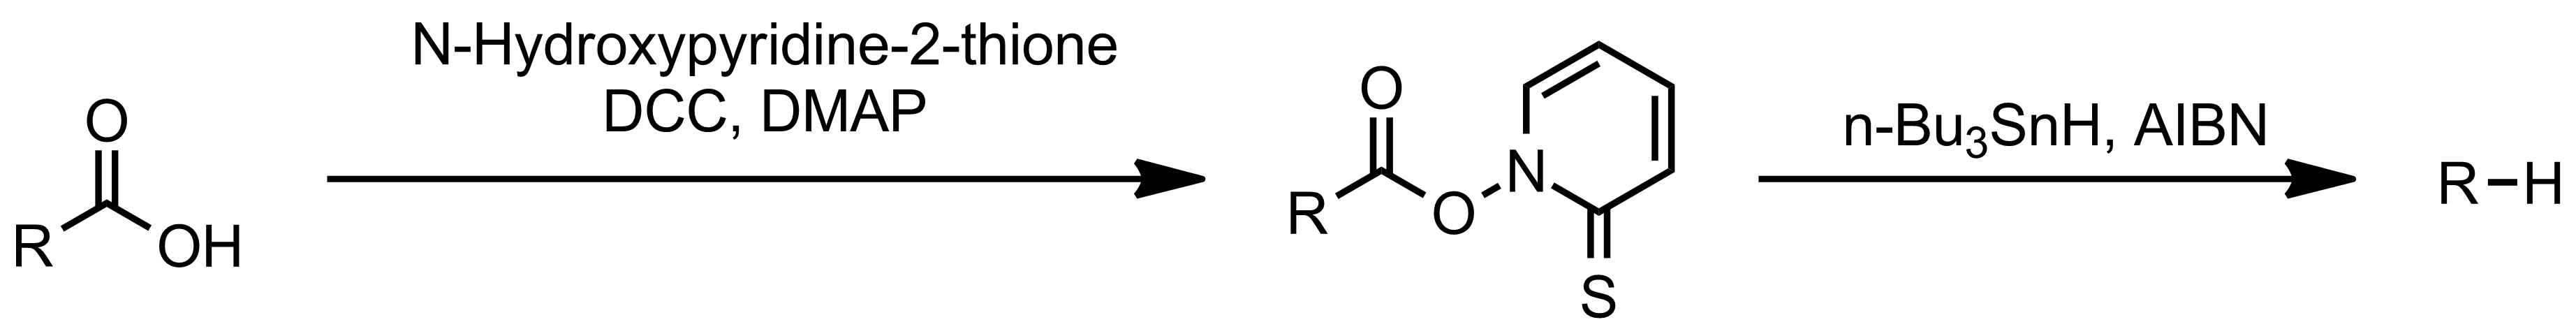 Schematic representation of the Barton Decarboxylation.